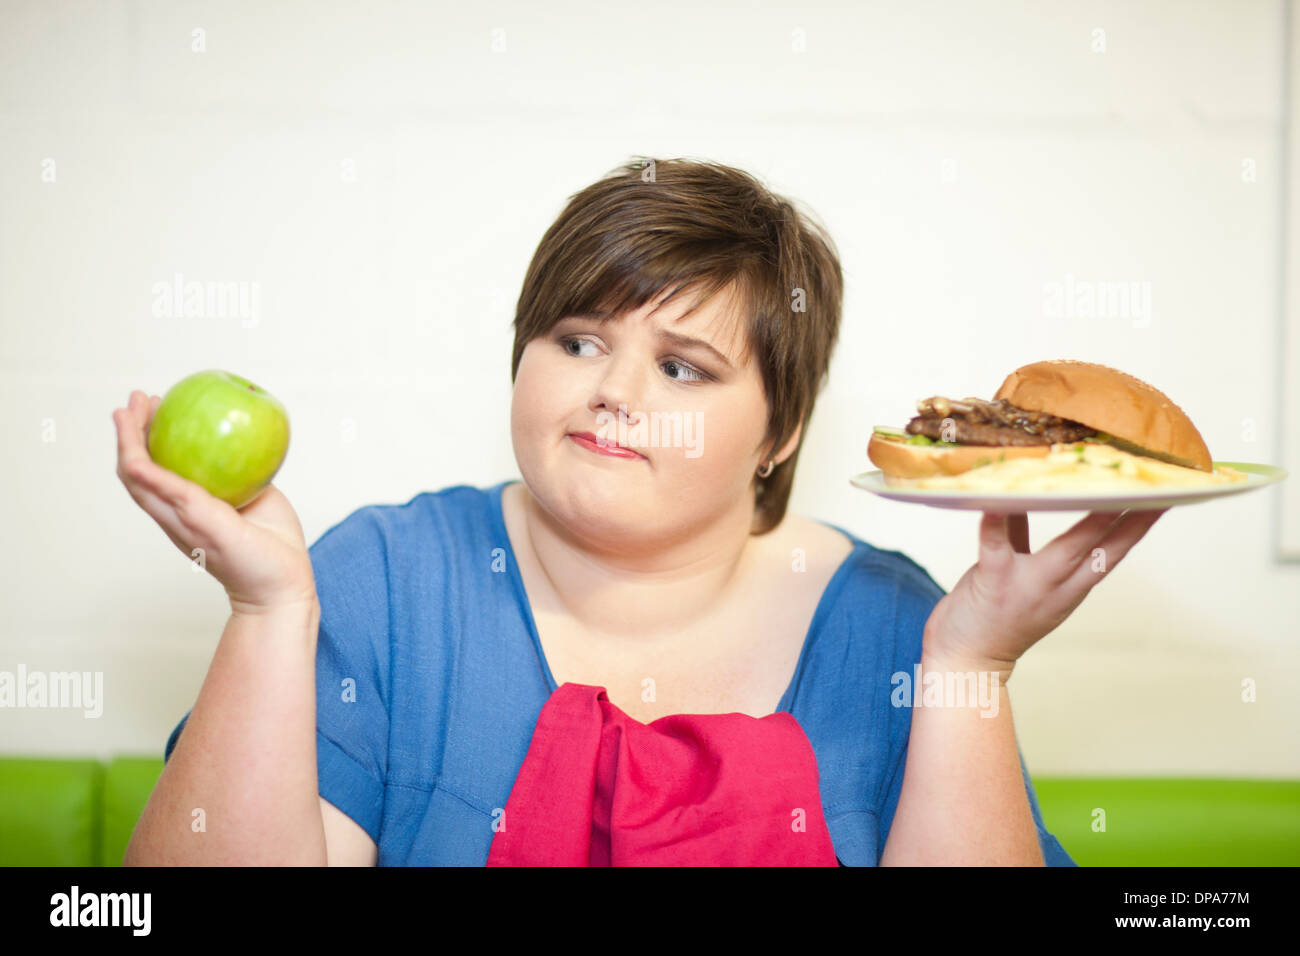 Young woman choosing between an apple and a burger - Stock Image